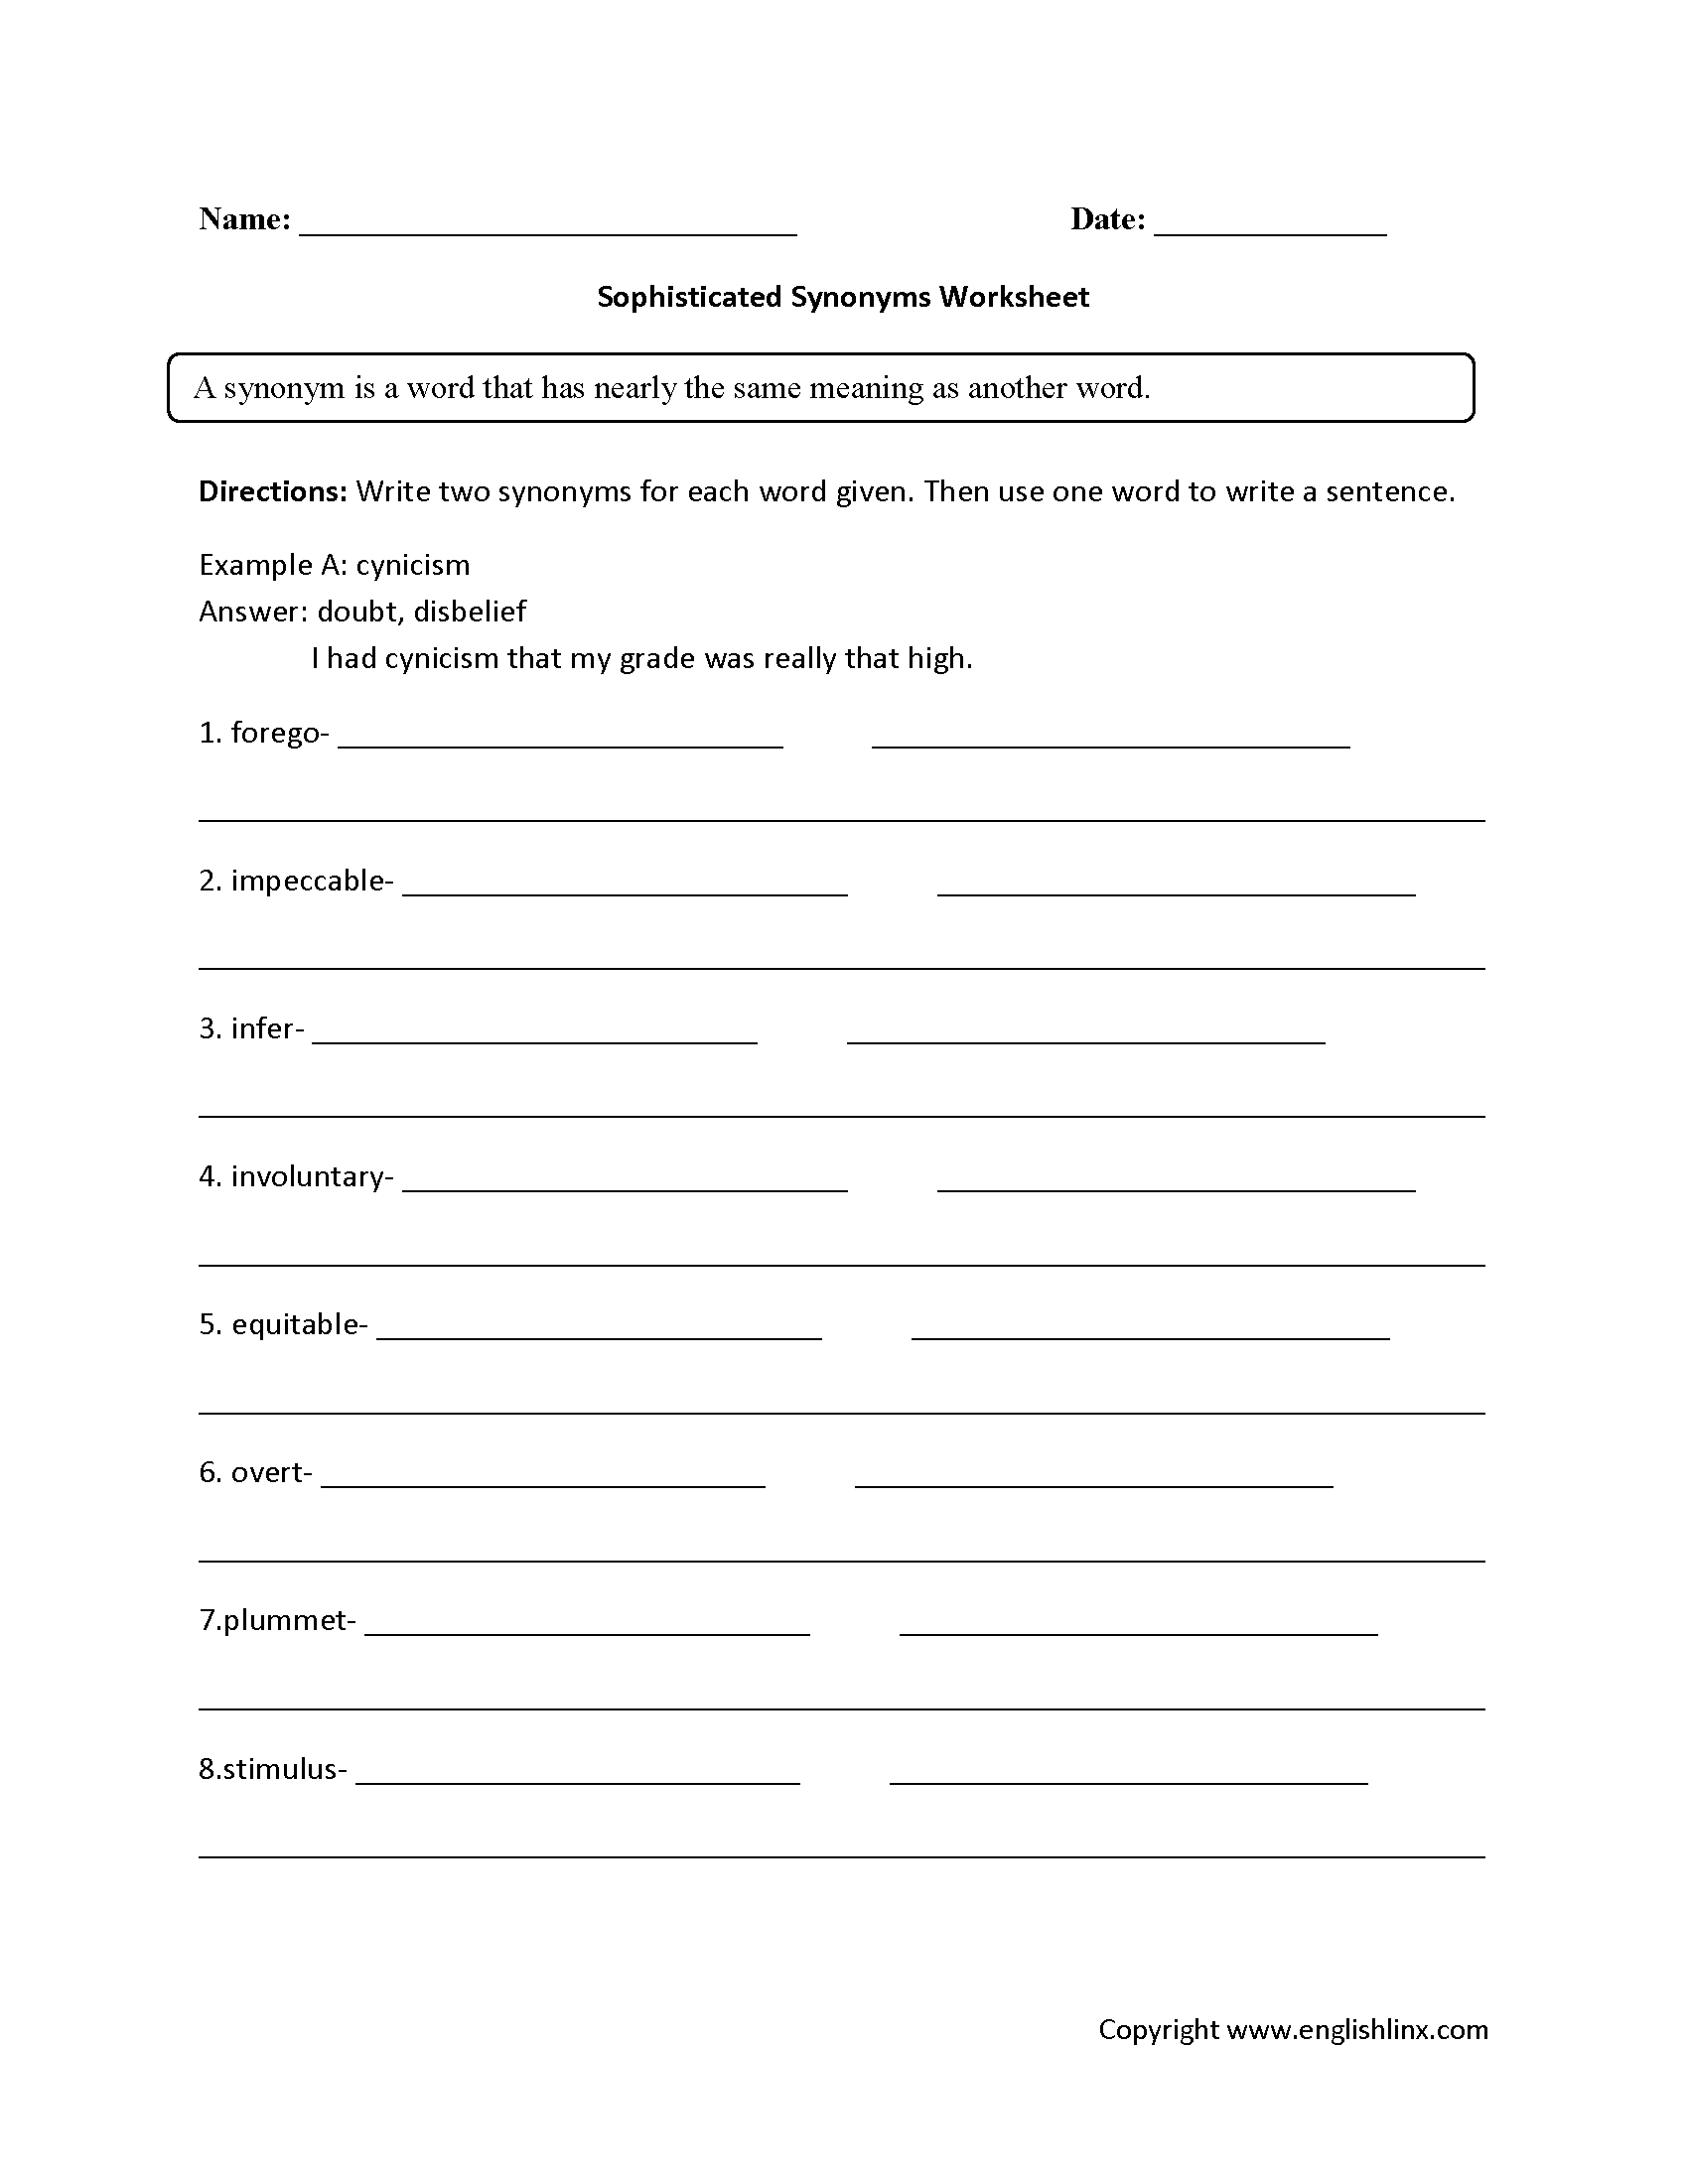 Sophisticated Synonyms Worksheets   Synonym worksheet [ 2200 x 1700 Pixel ]